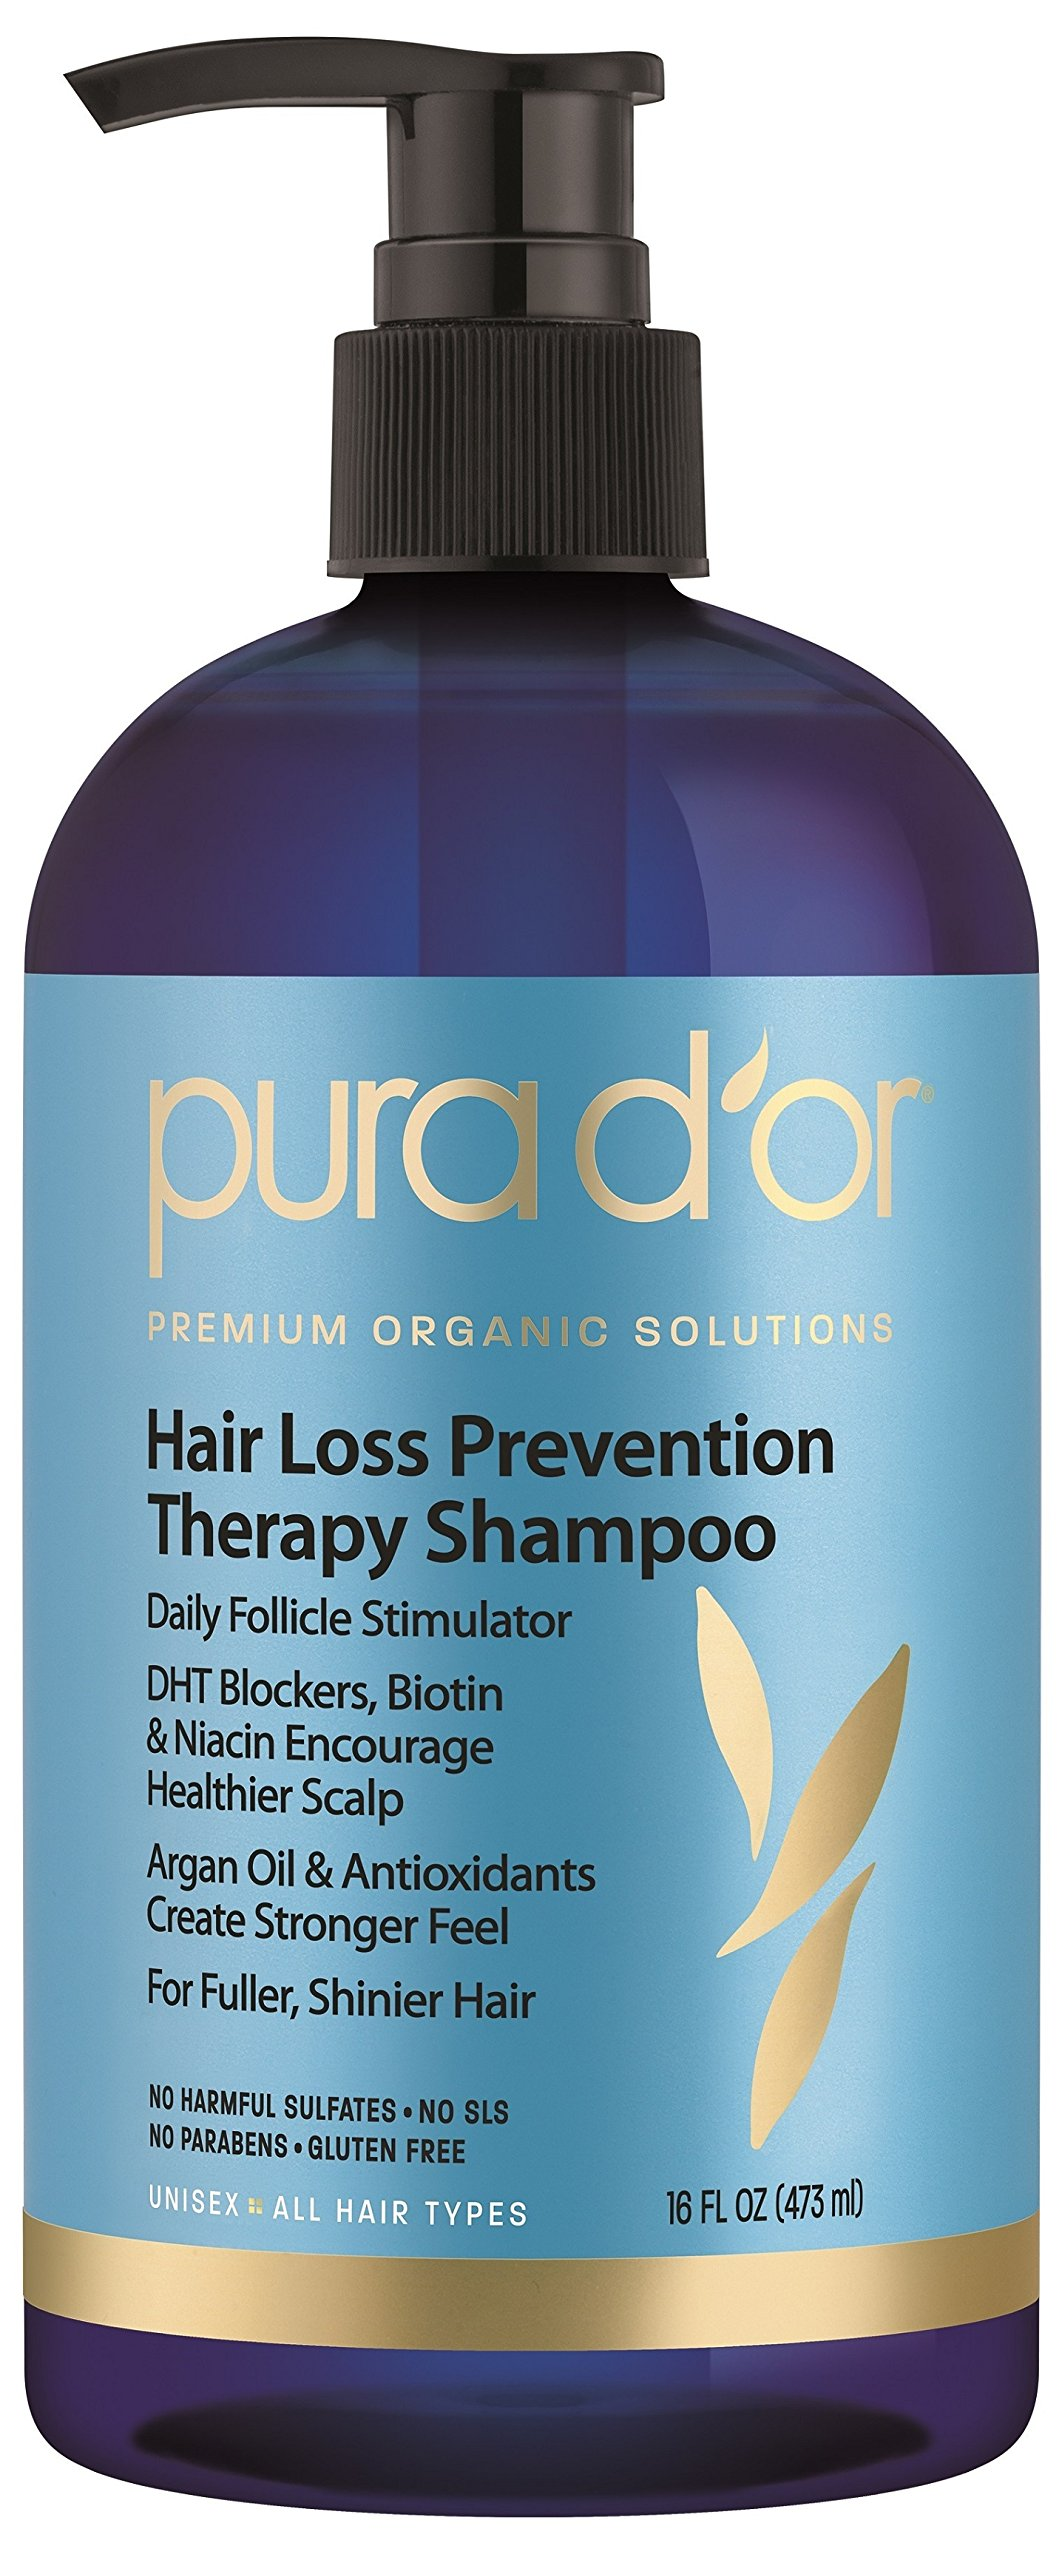 PURA D'OR Hair Thinning Therapy Shampoo for Prevention, Infused with Organic Argan Oil, Biotin & Natural Ingredients, for All Hair Types, Men and Women, 16 Fl Oz (Packaging may vary)